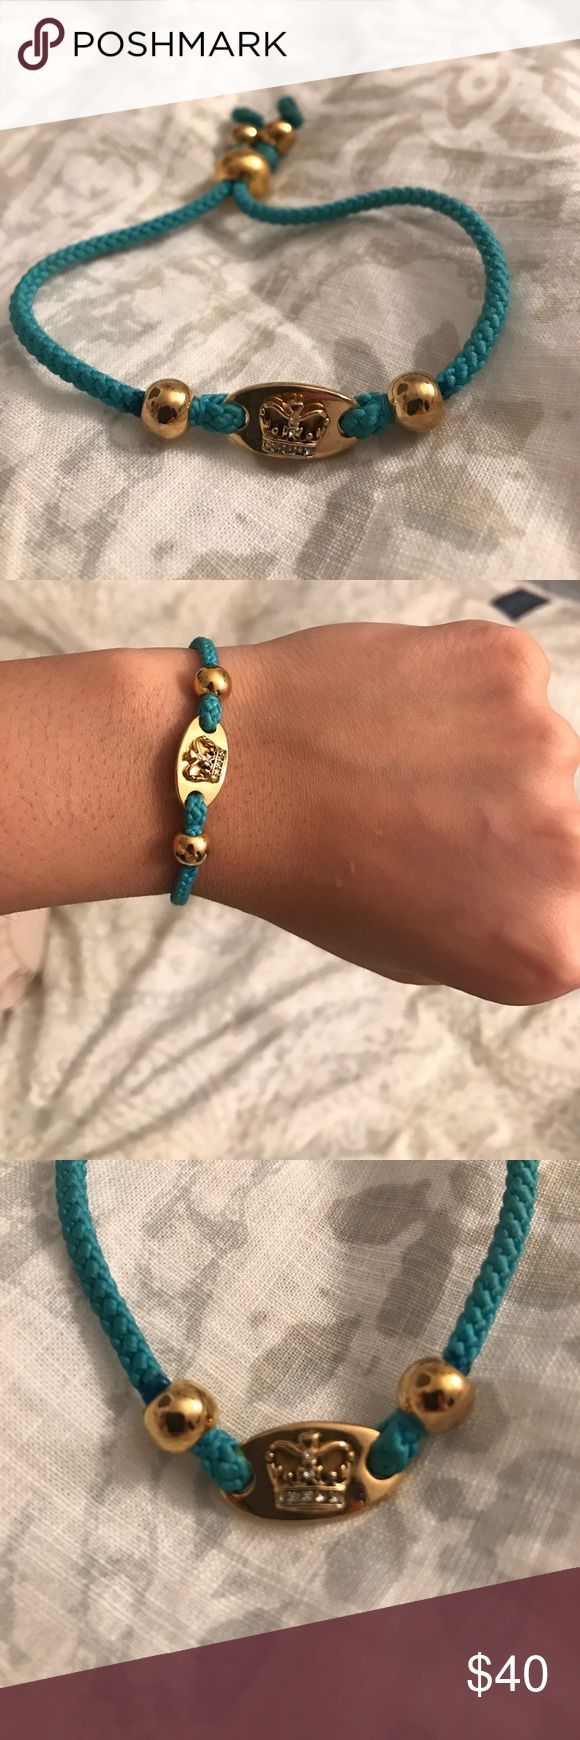 Juicy Couture Rope Bracelet Juicy Couture Turquoise Rope Bracelet. Perfect for Summer ☀️. Lightly worn. Juicy Couture Jewelry Bracelets